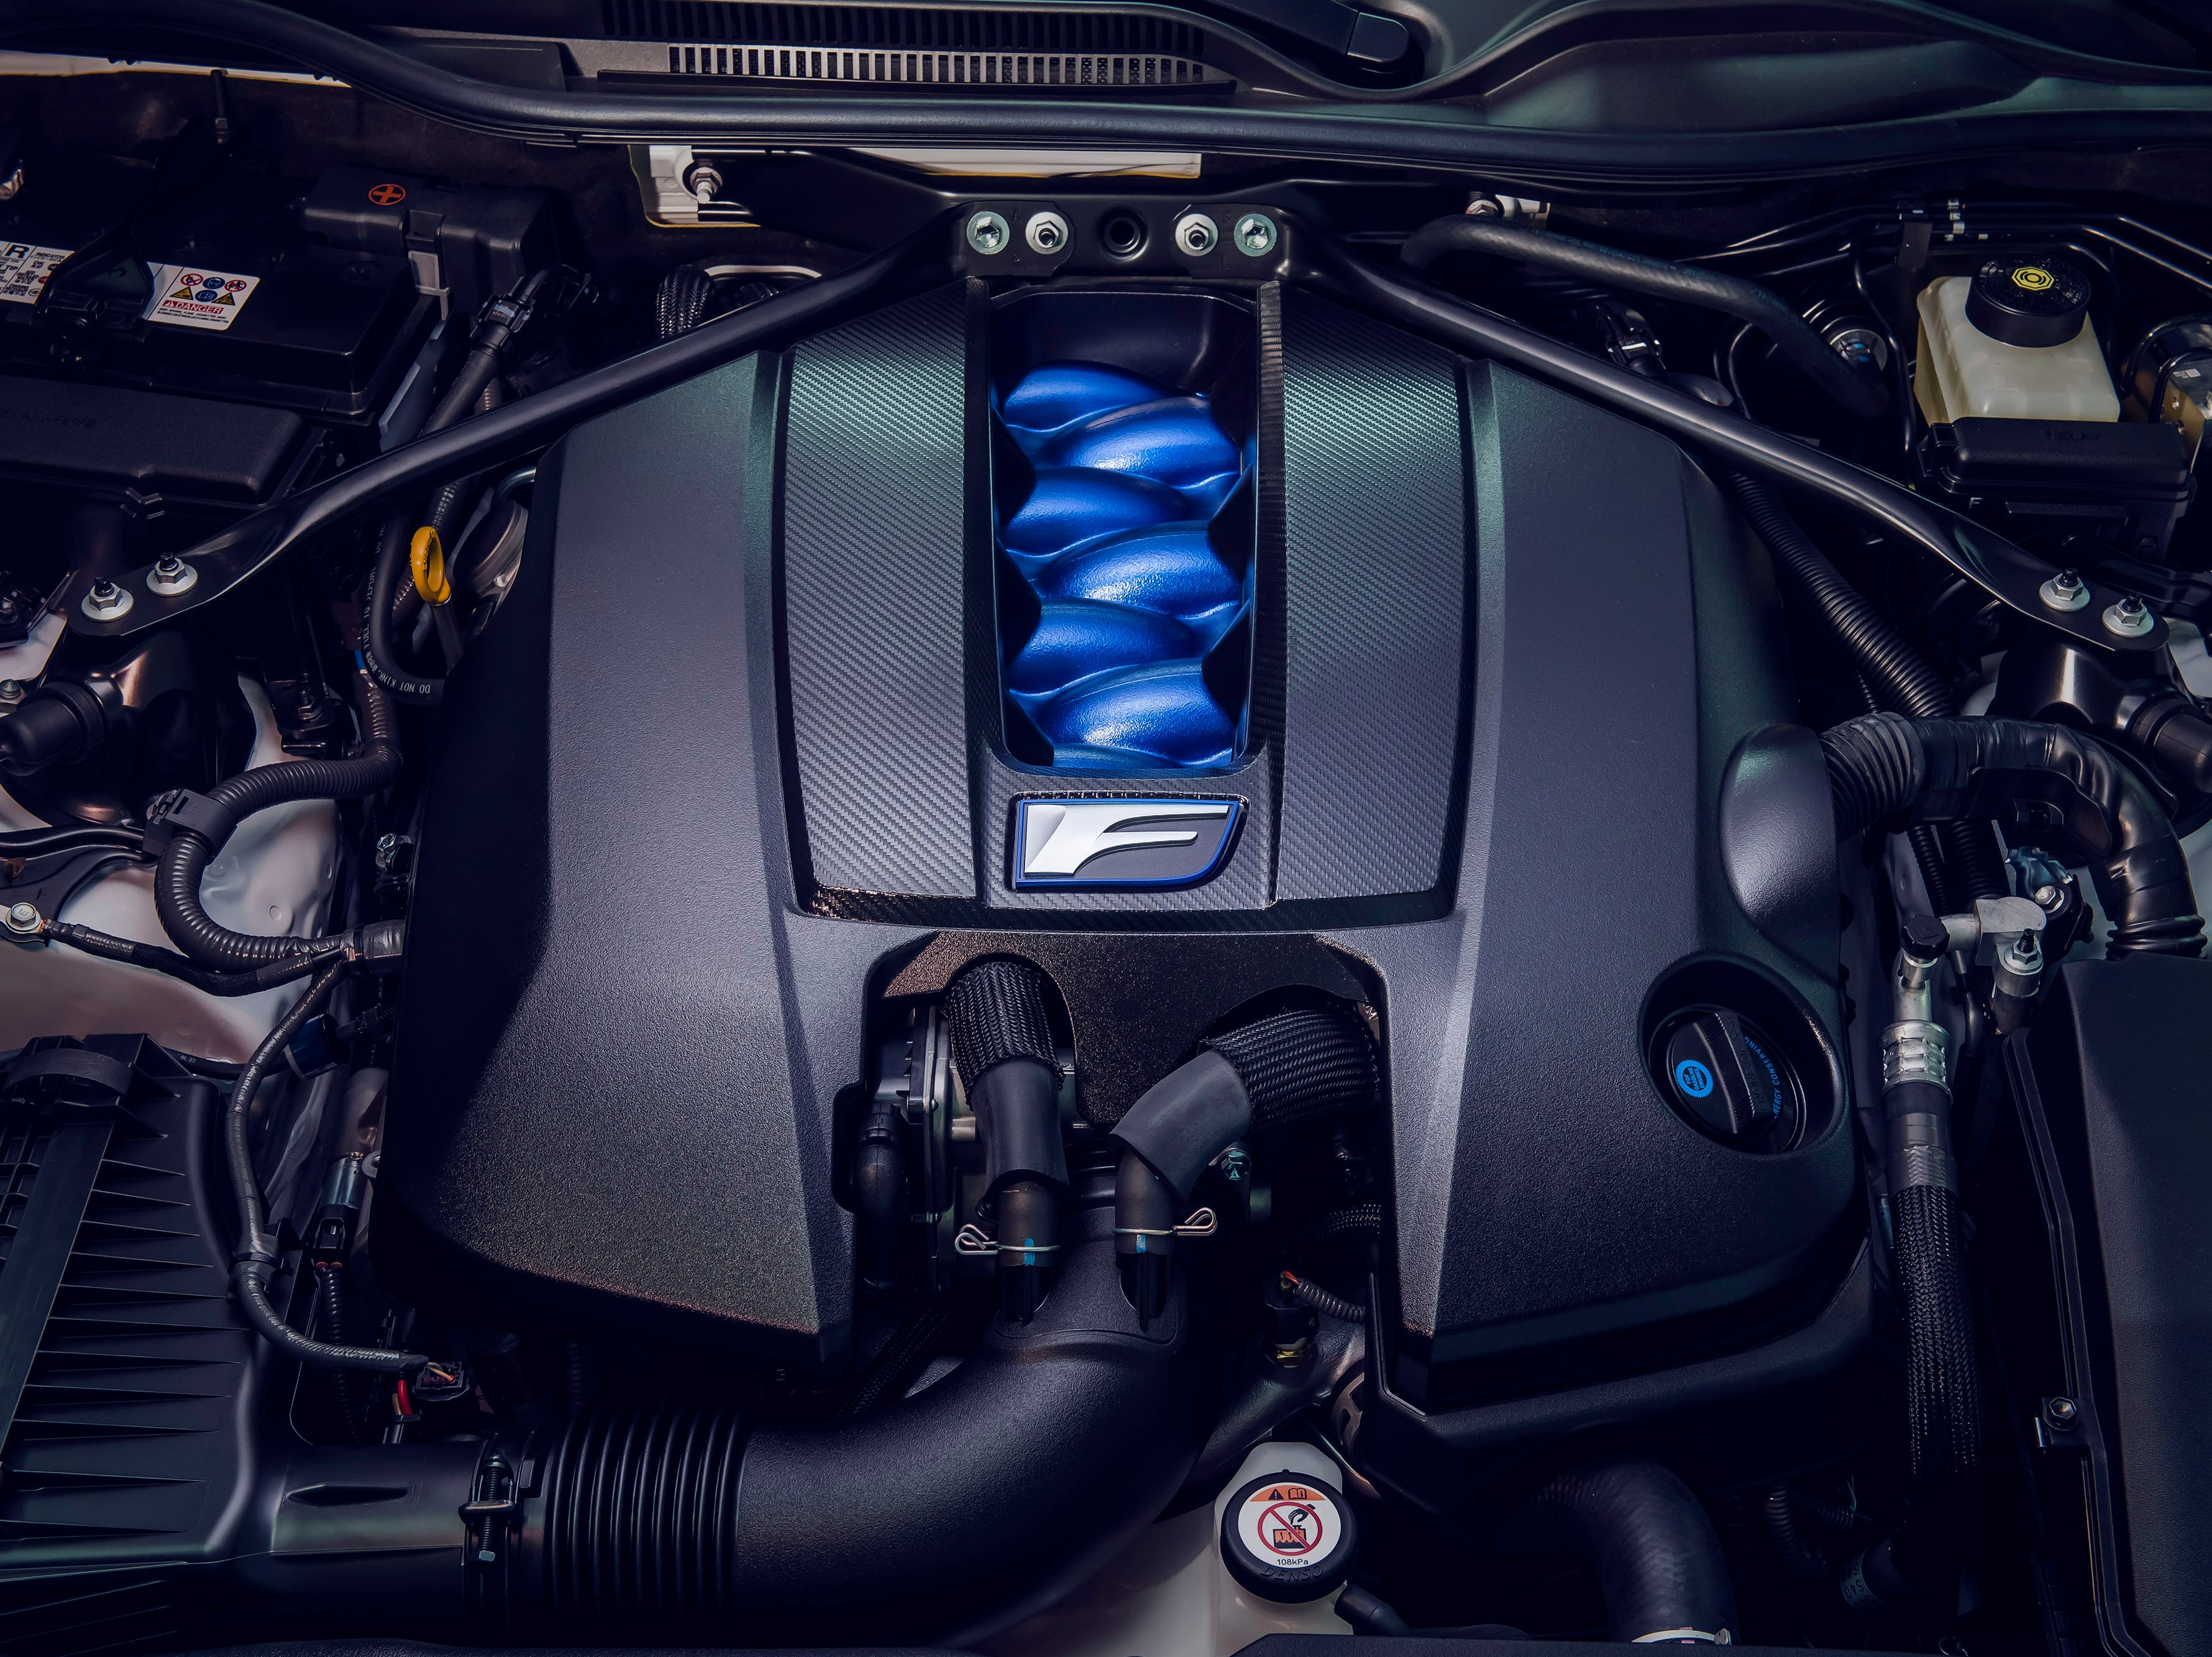 The Track Edition uses the same 472hp, normally aspirated 5.0- liter V8 found in the 2020 RC F. Combined with the new electronic launch control system, the RC F Track Edition is capable of launching from 0-to-60 mph in 3.96 seconds.